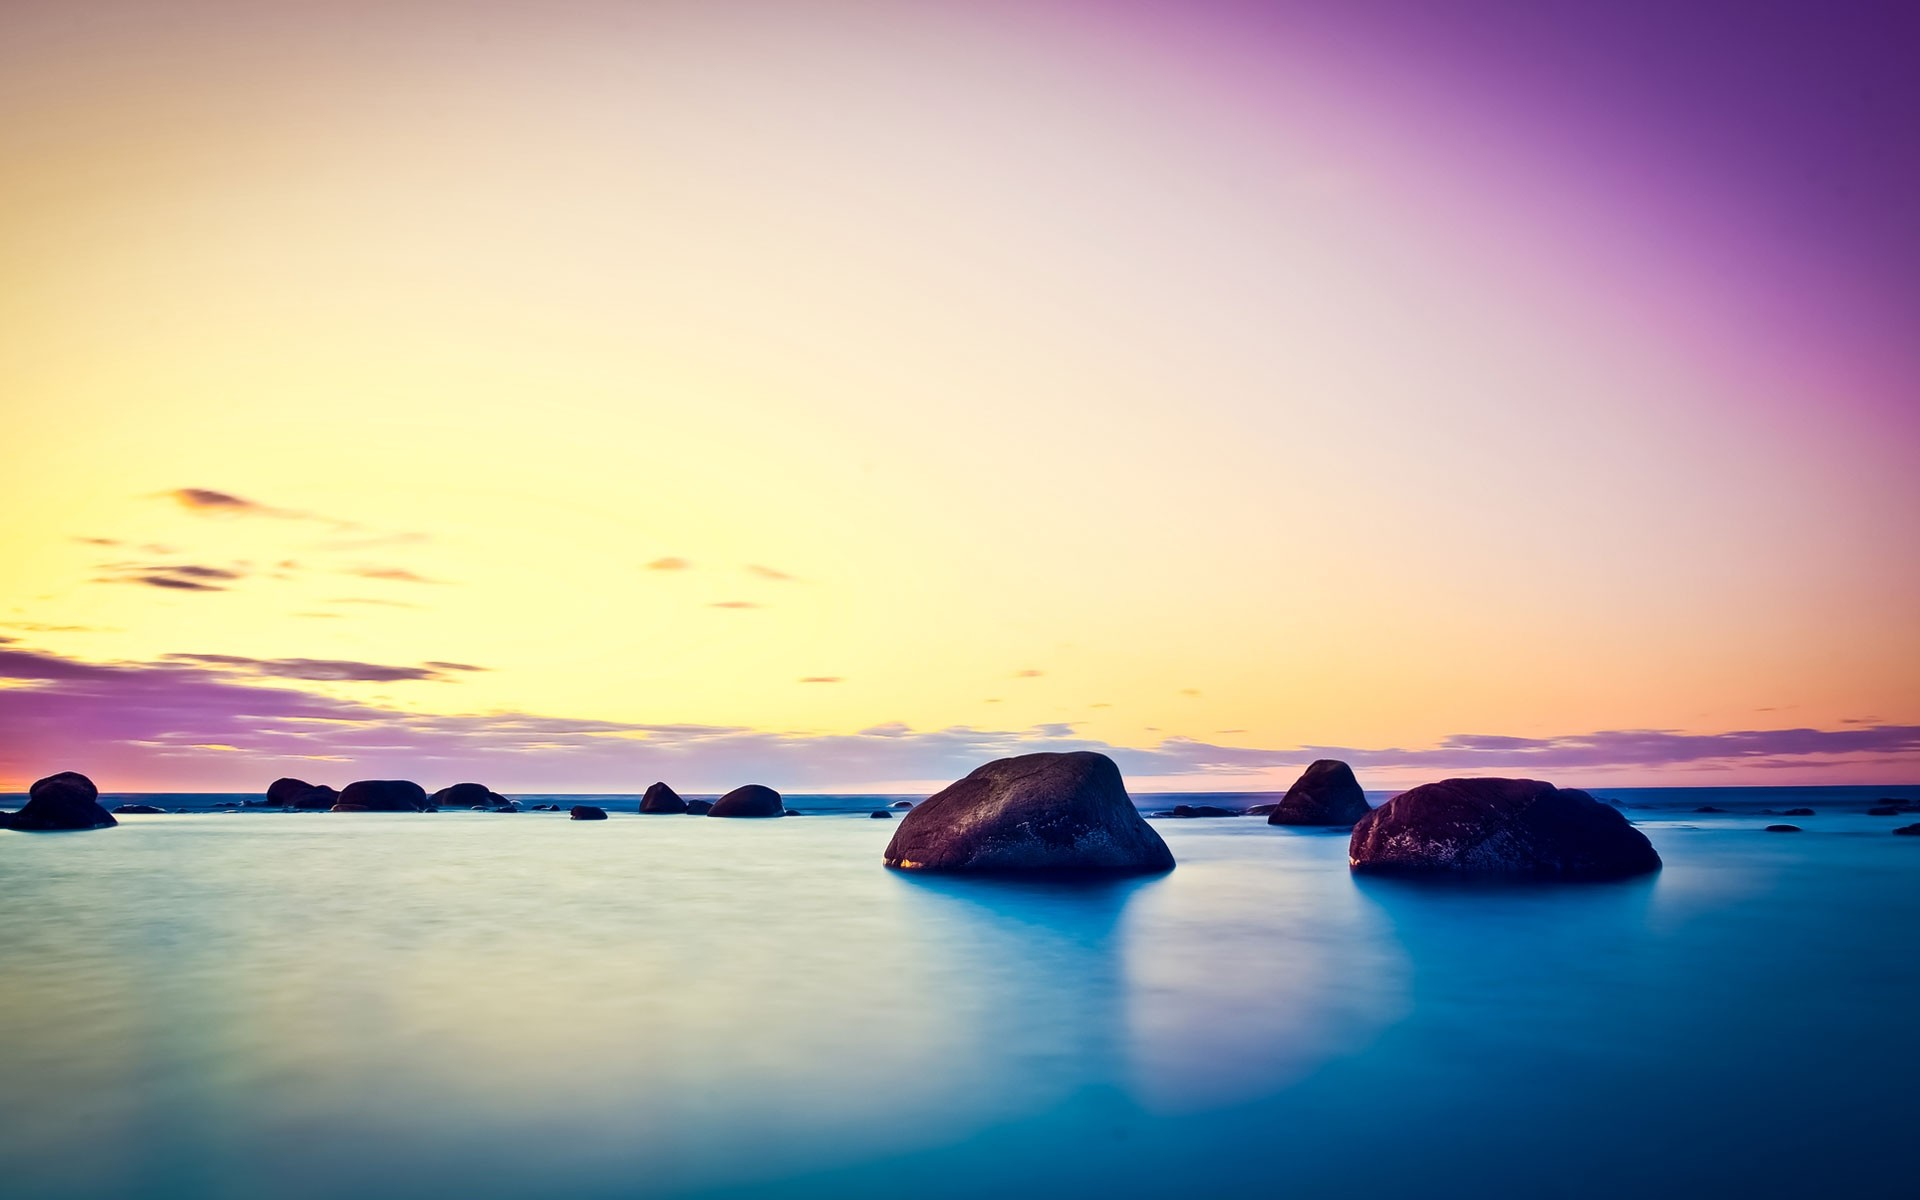 Calm Background Images 70 Pictures